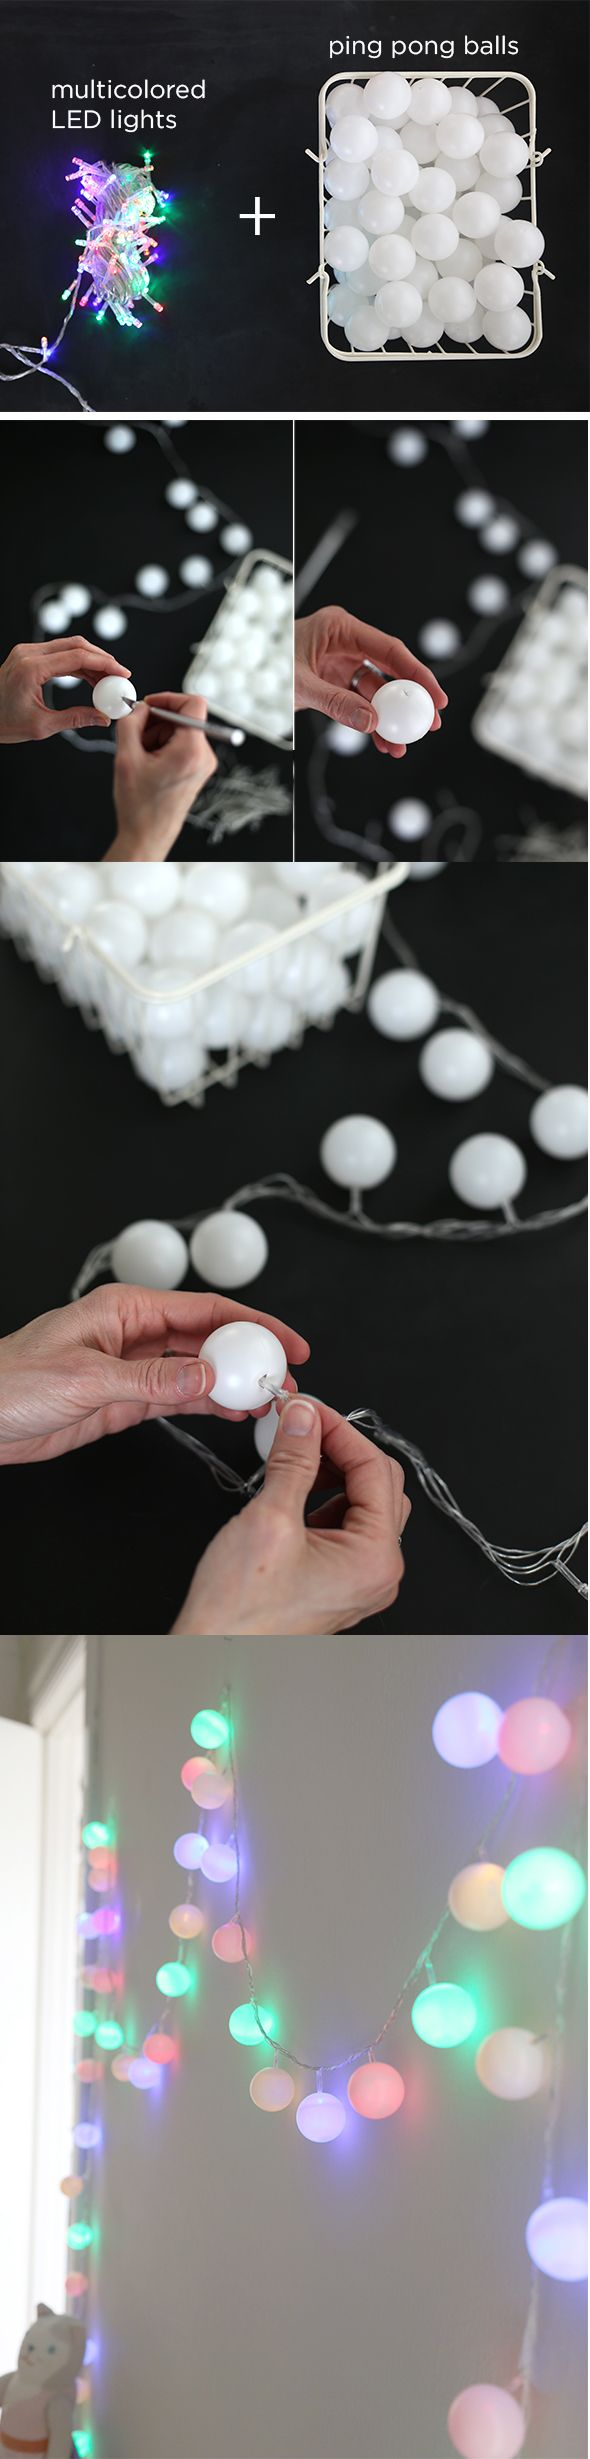 DIY: ping pong ball cafe lights. Would be cool for the reception @Mary Powers Powers Powers Powers Powers Powers Igo